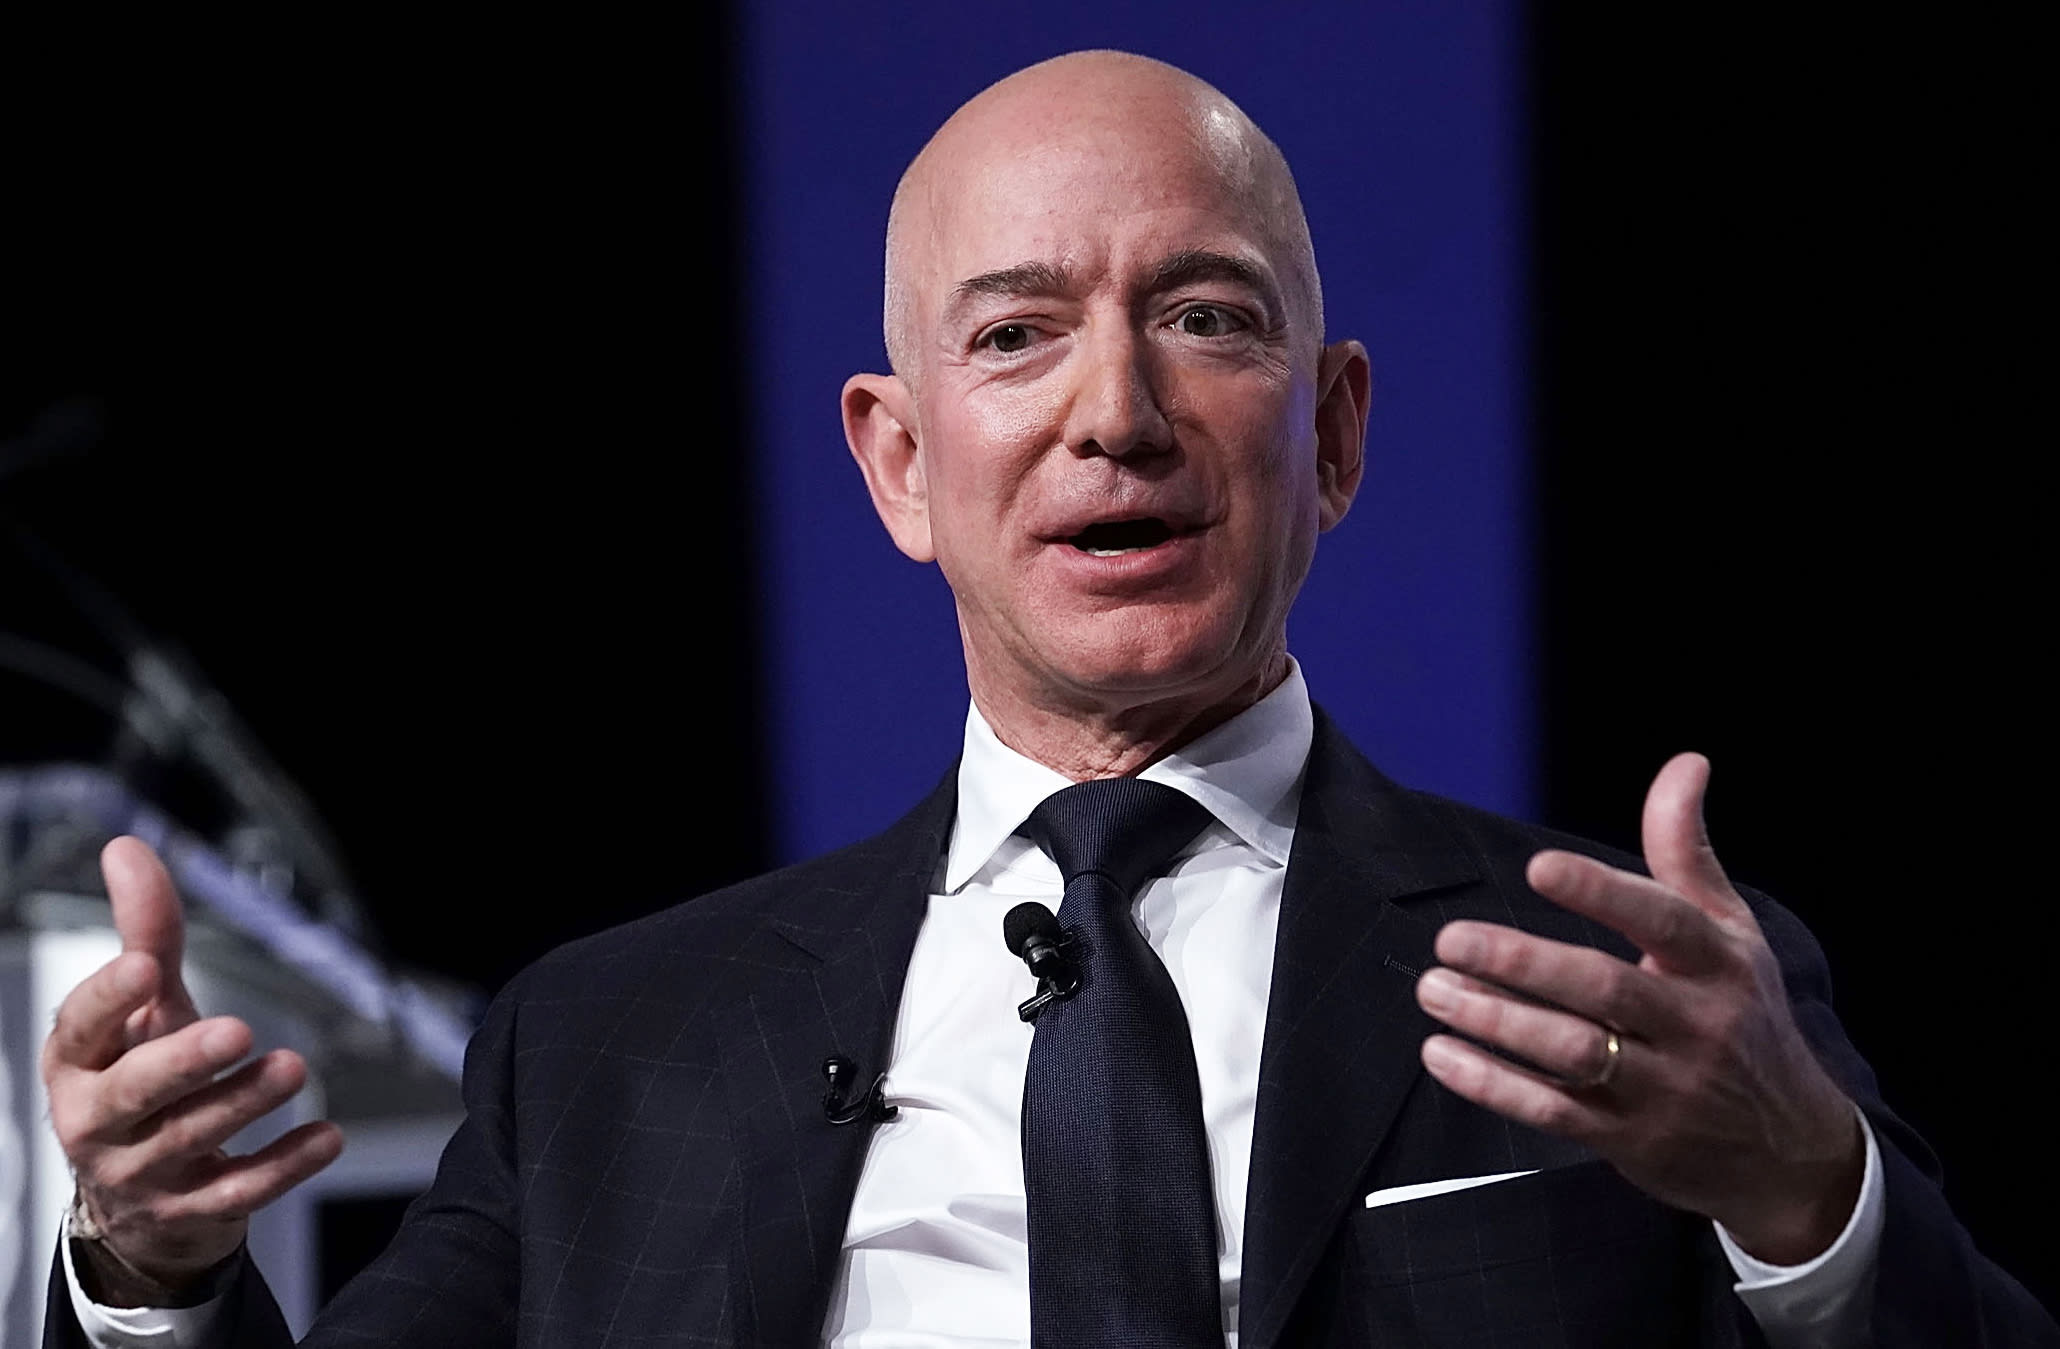 Amazon gets investors ready for day when Jeff Bezos isn't CEO